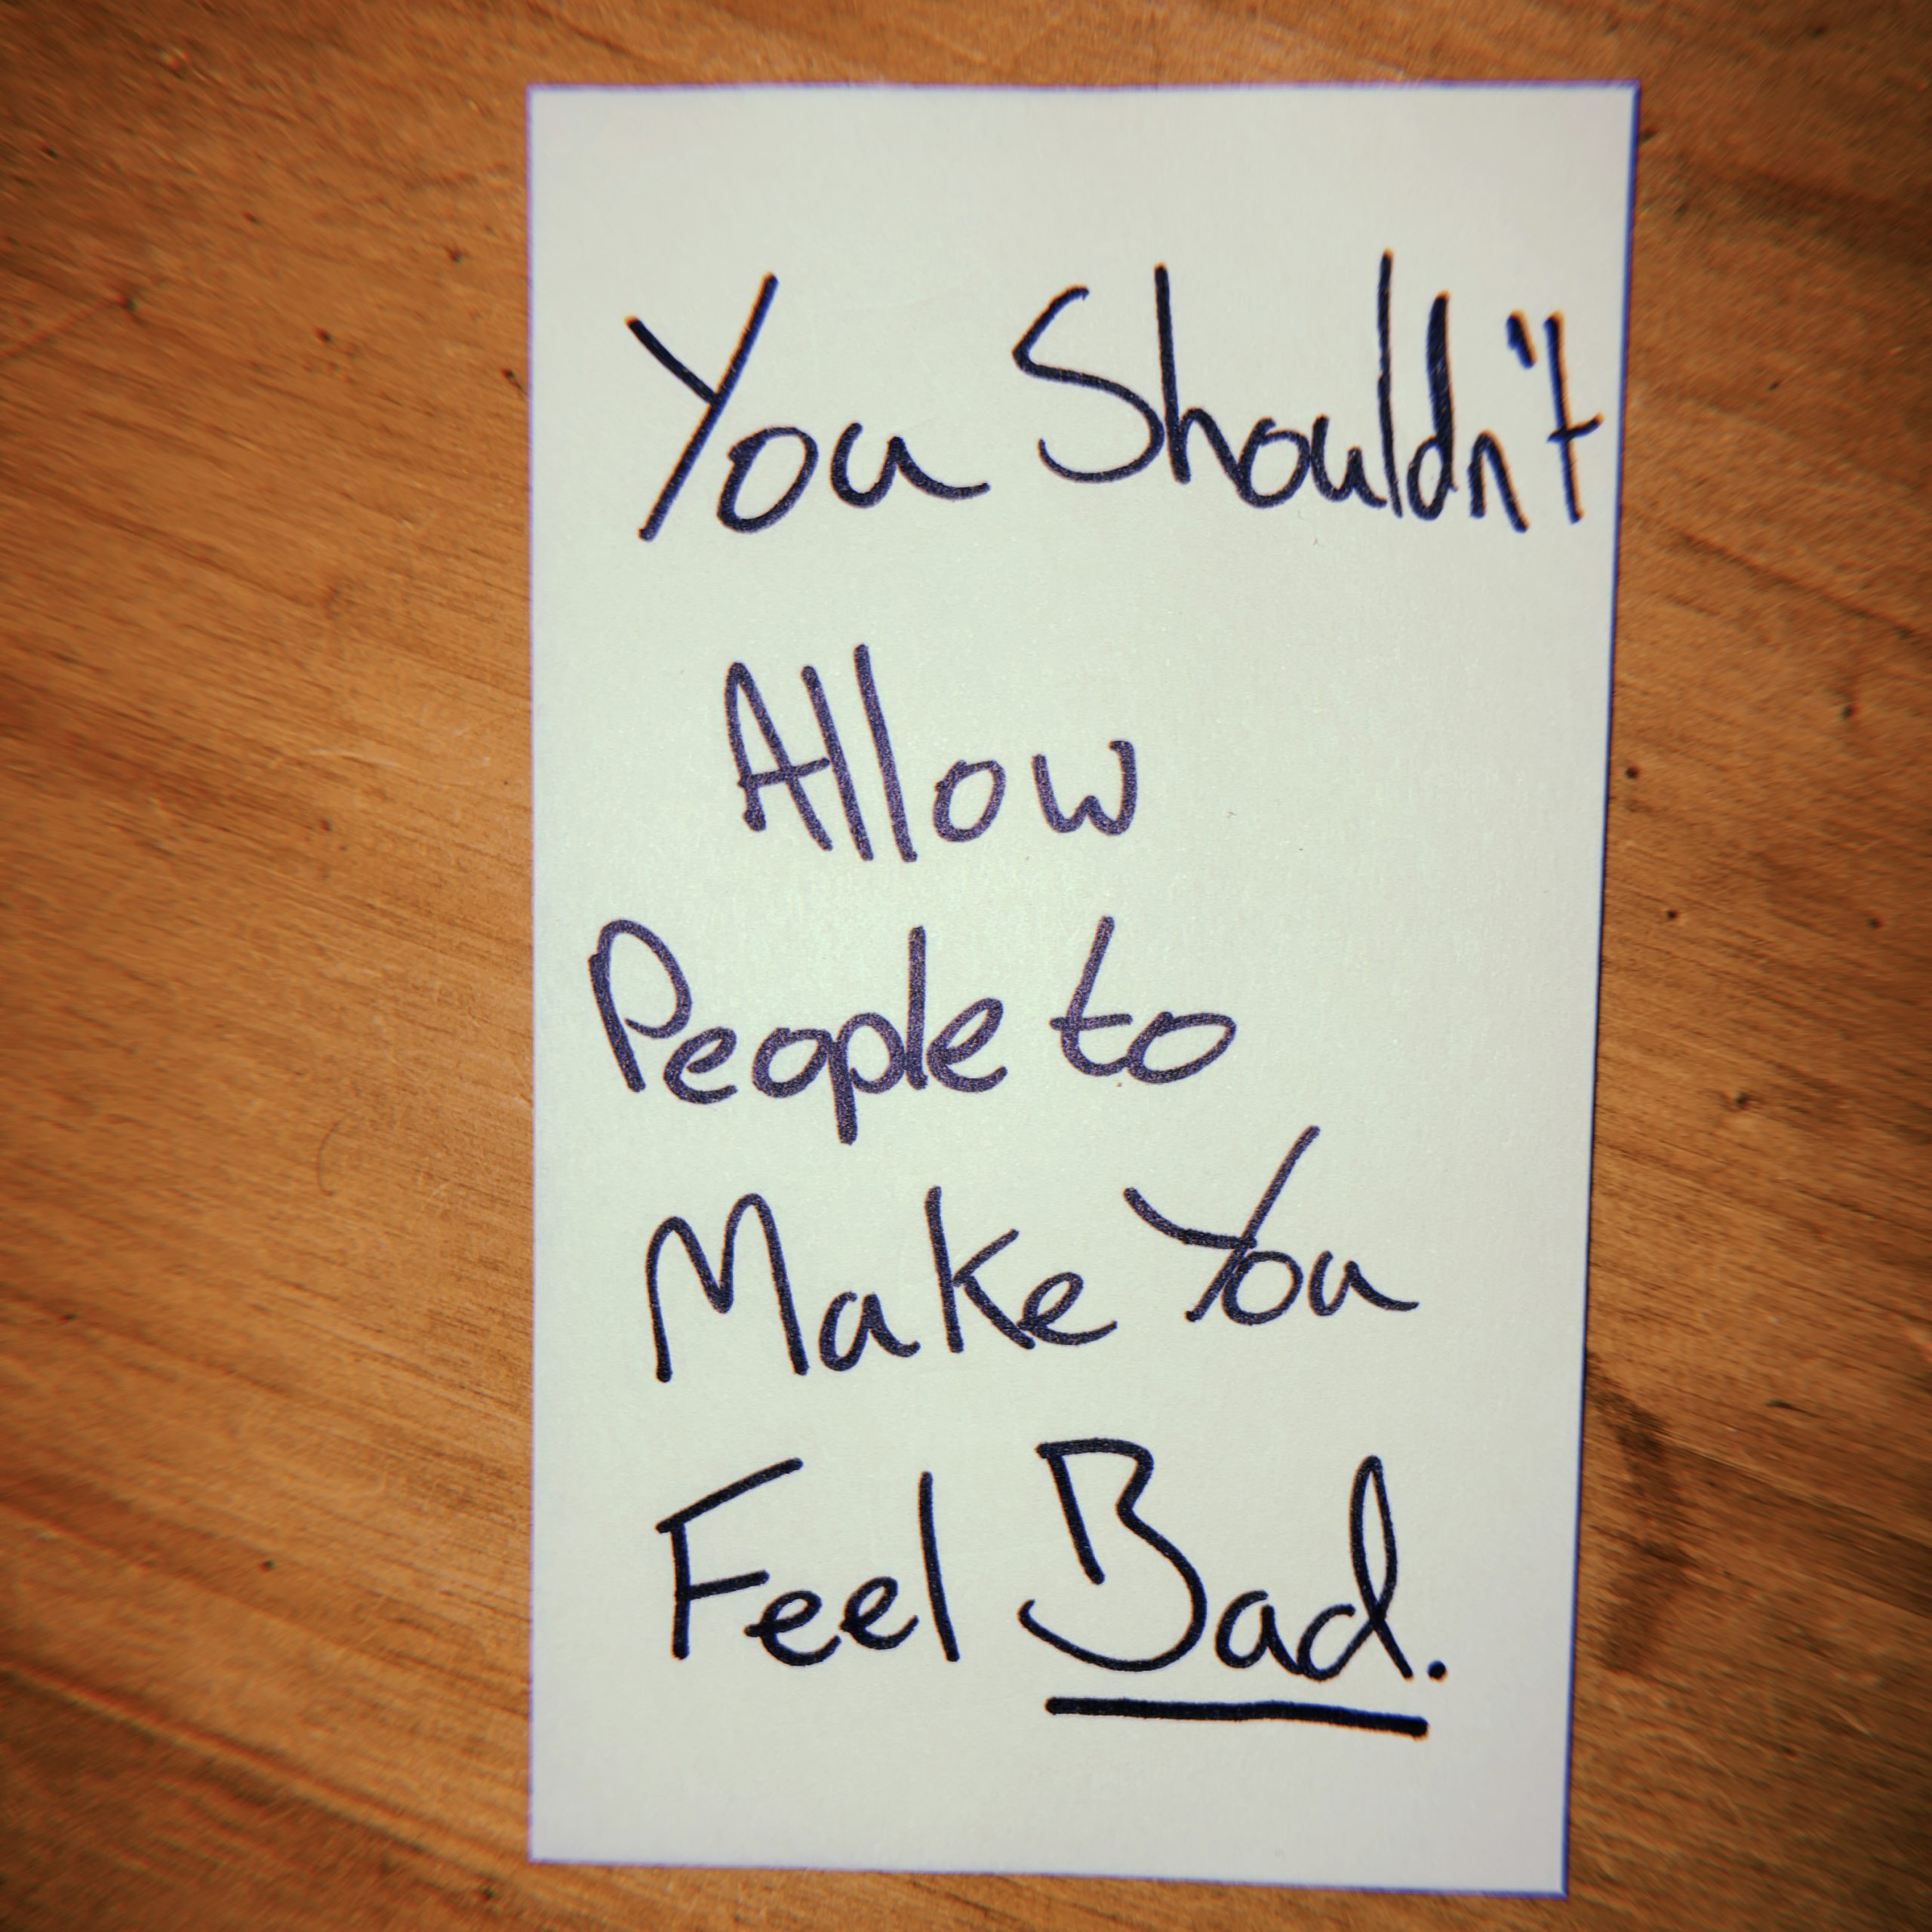 You Shouldn't Allow People to Make You Feel Bad